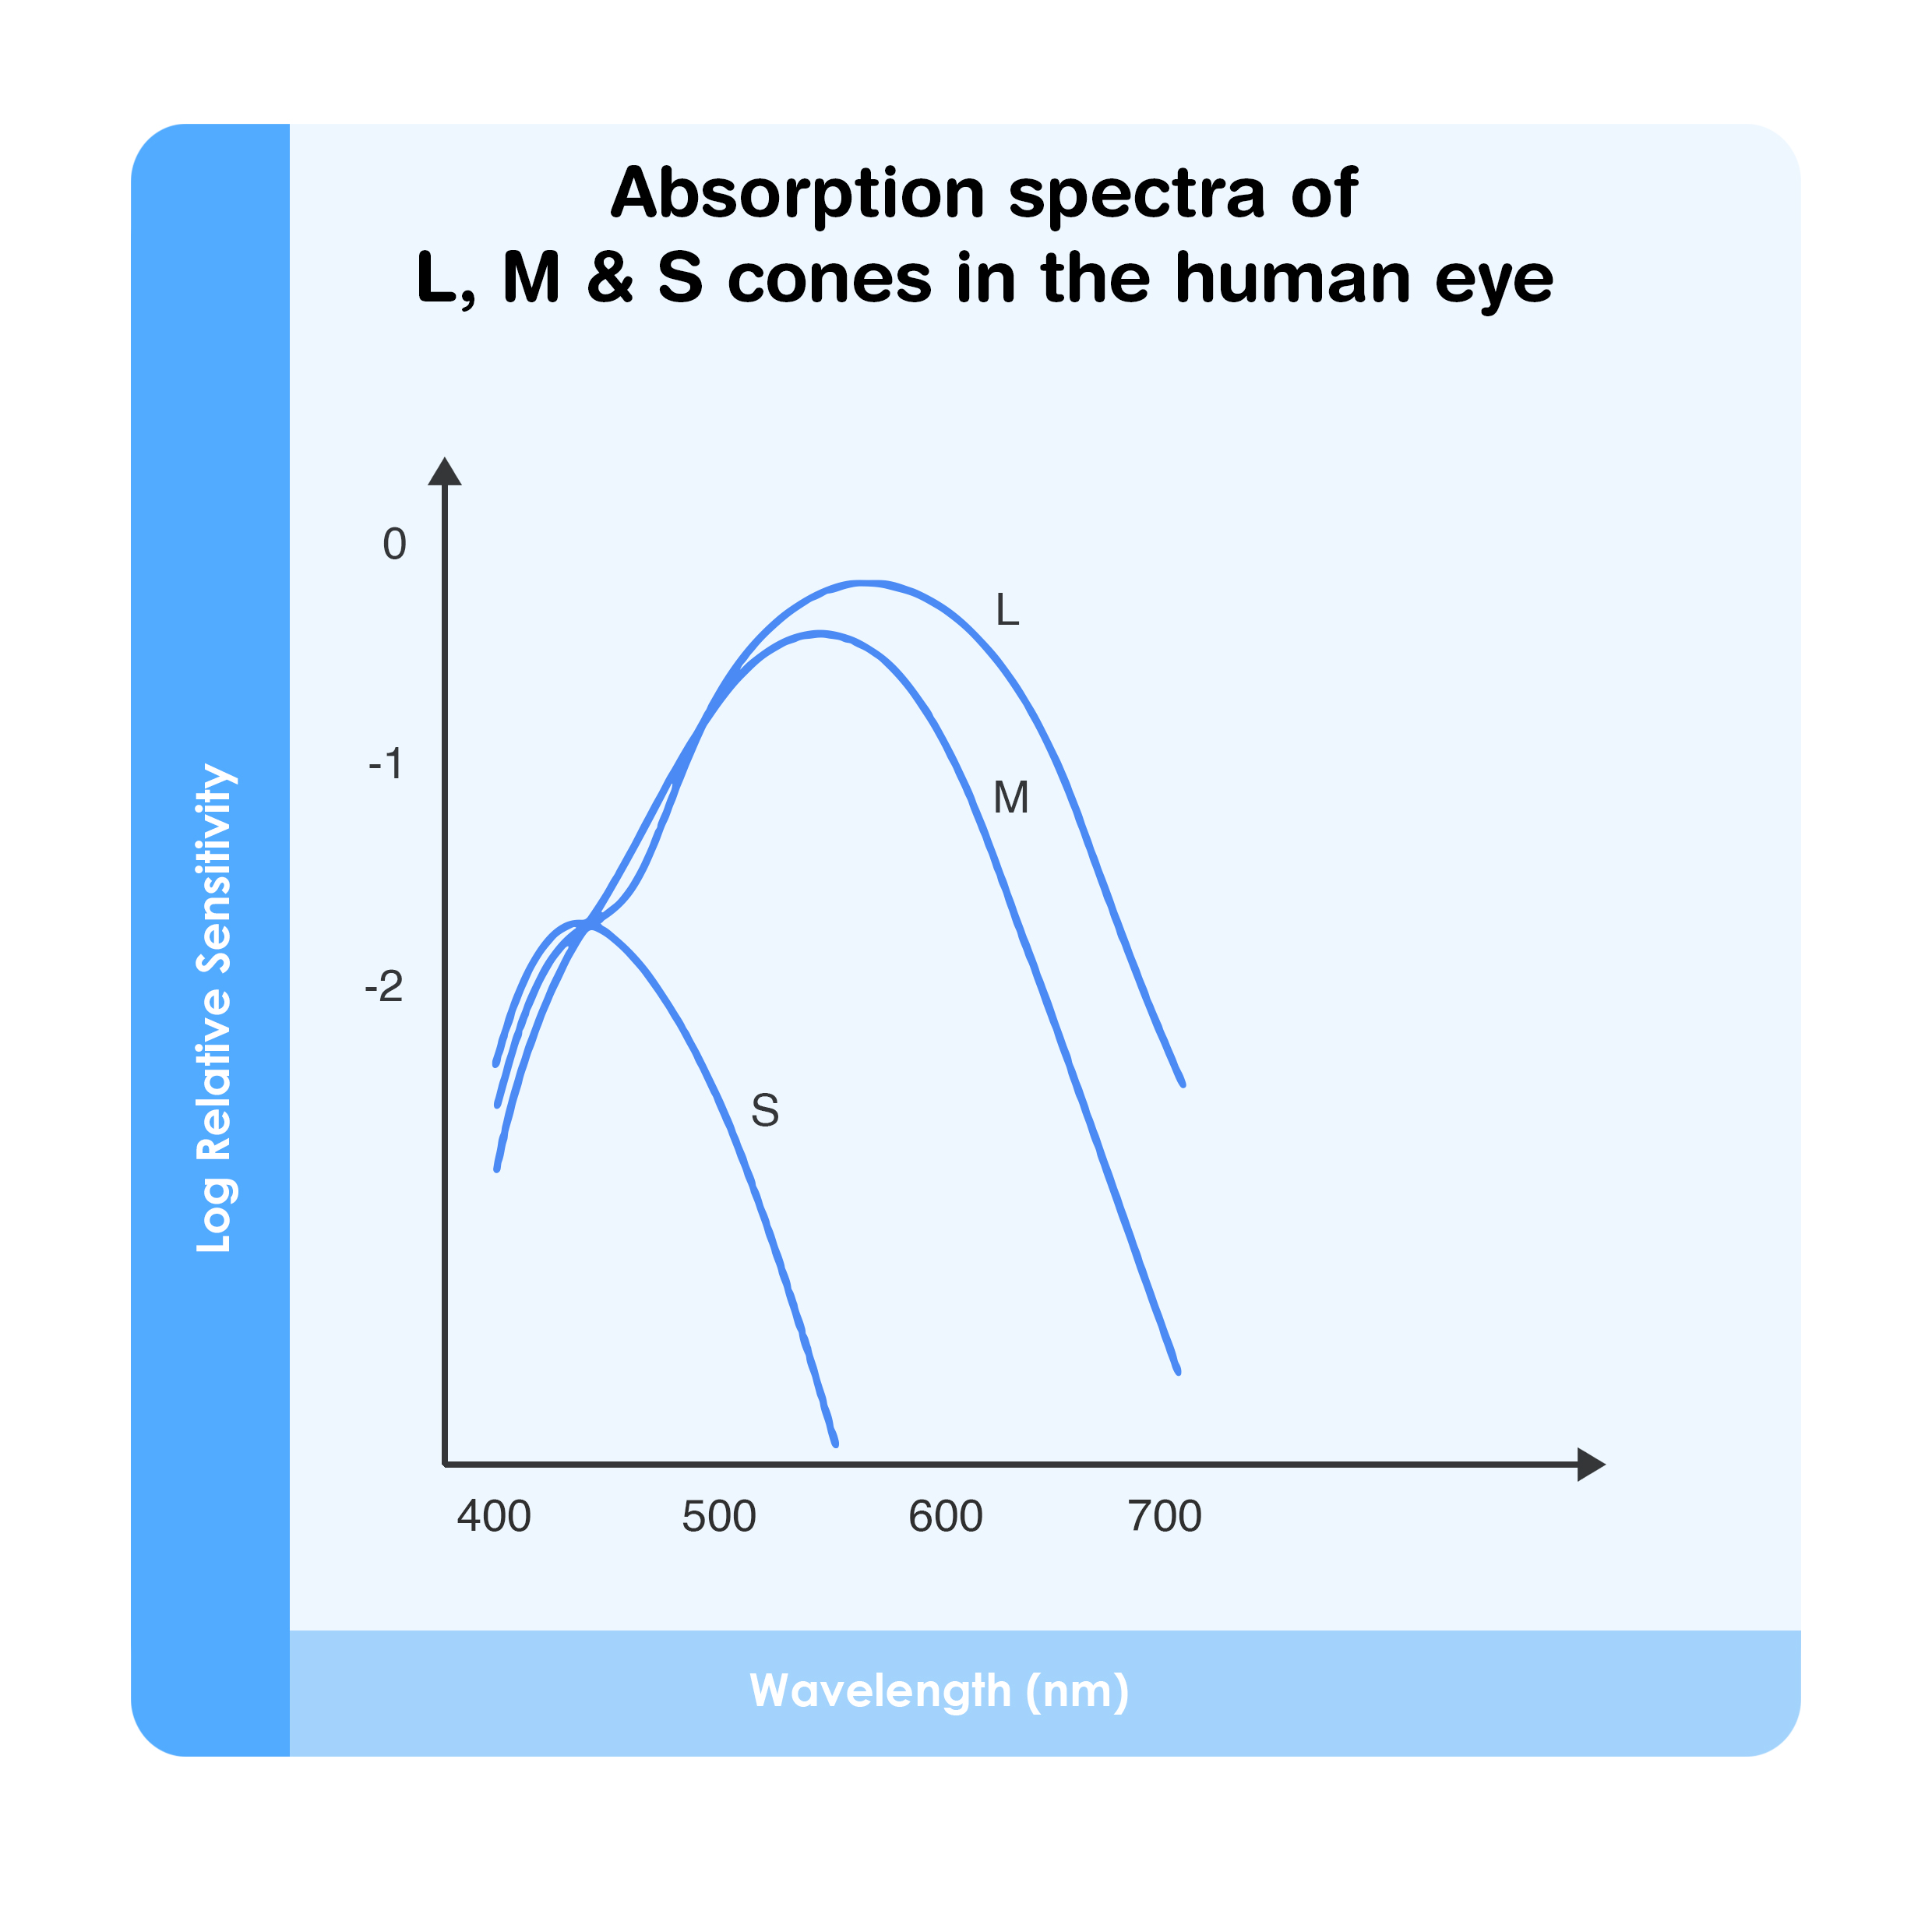 Absorption spectra of L, M & S cones in the human eye